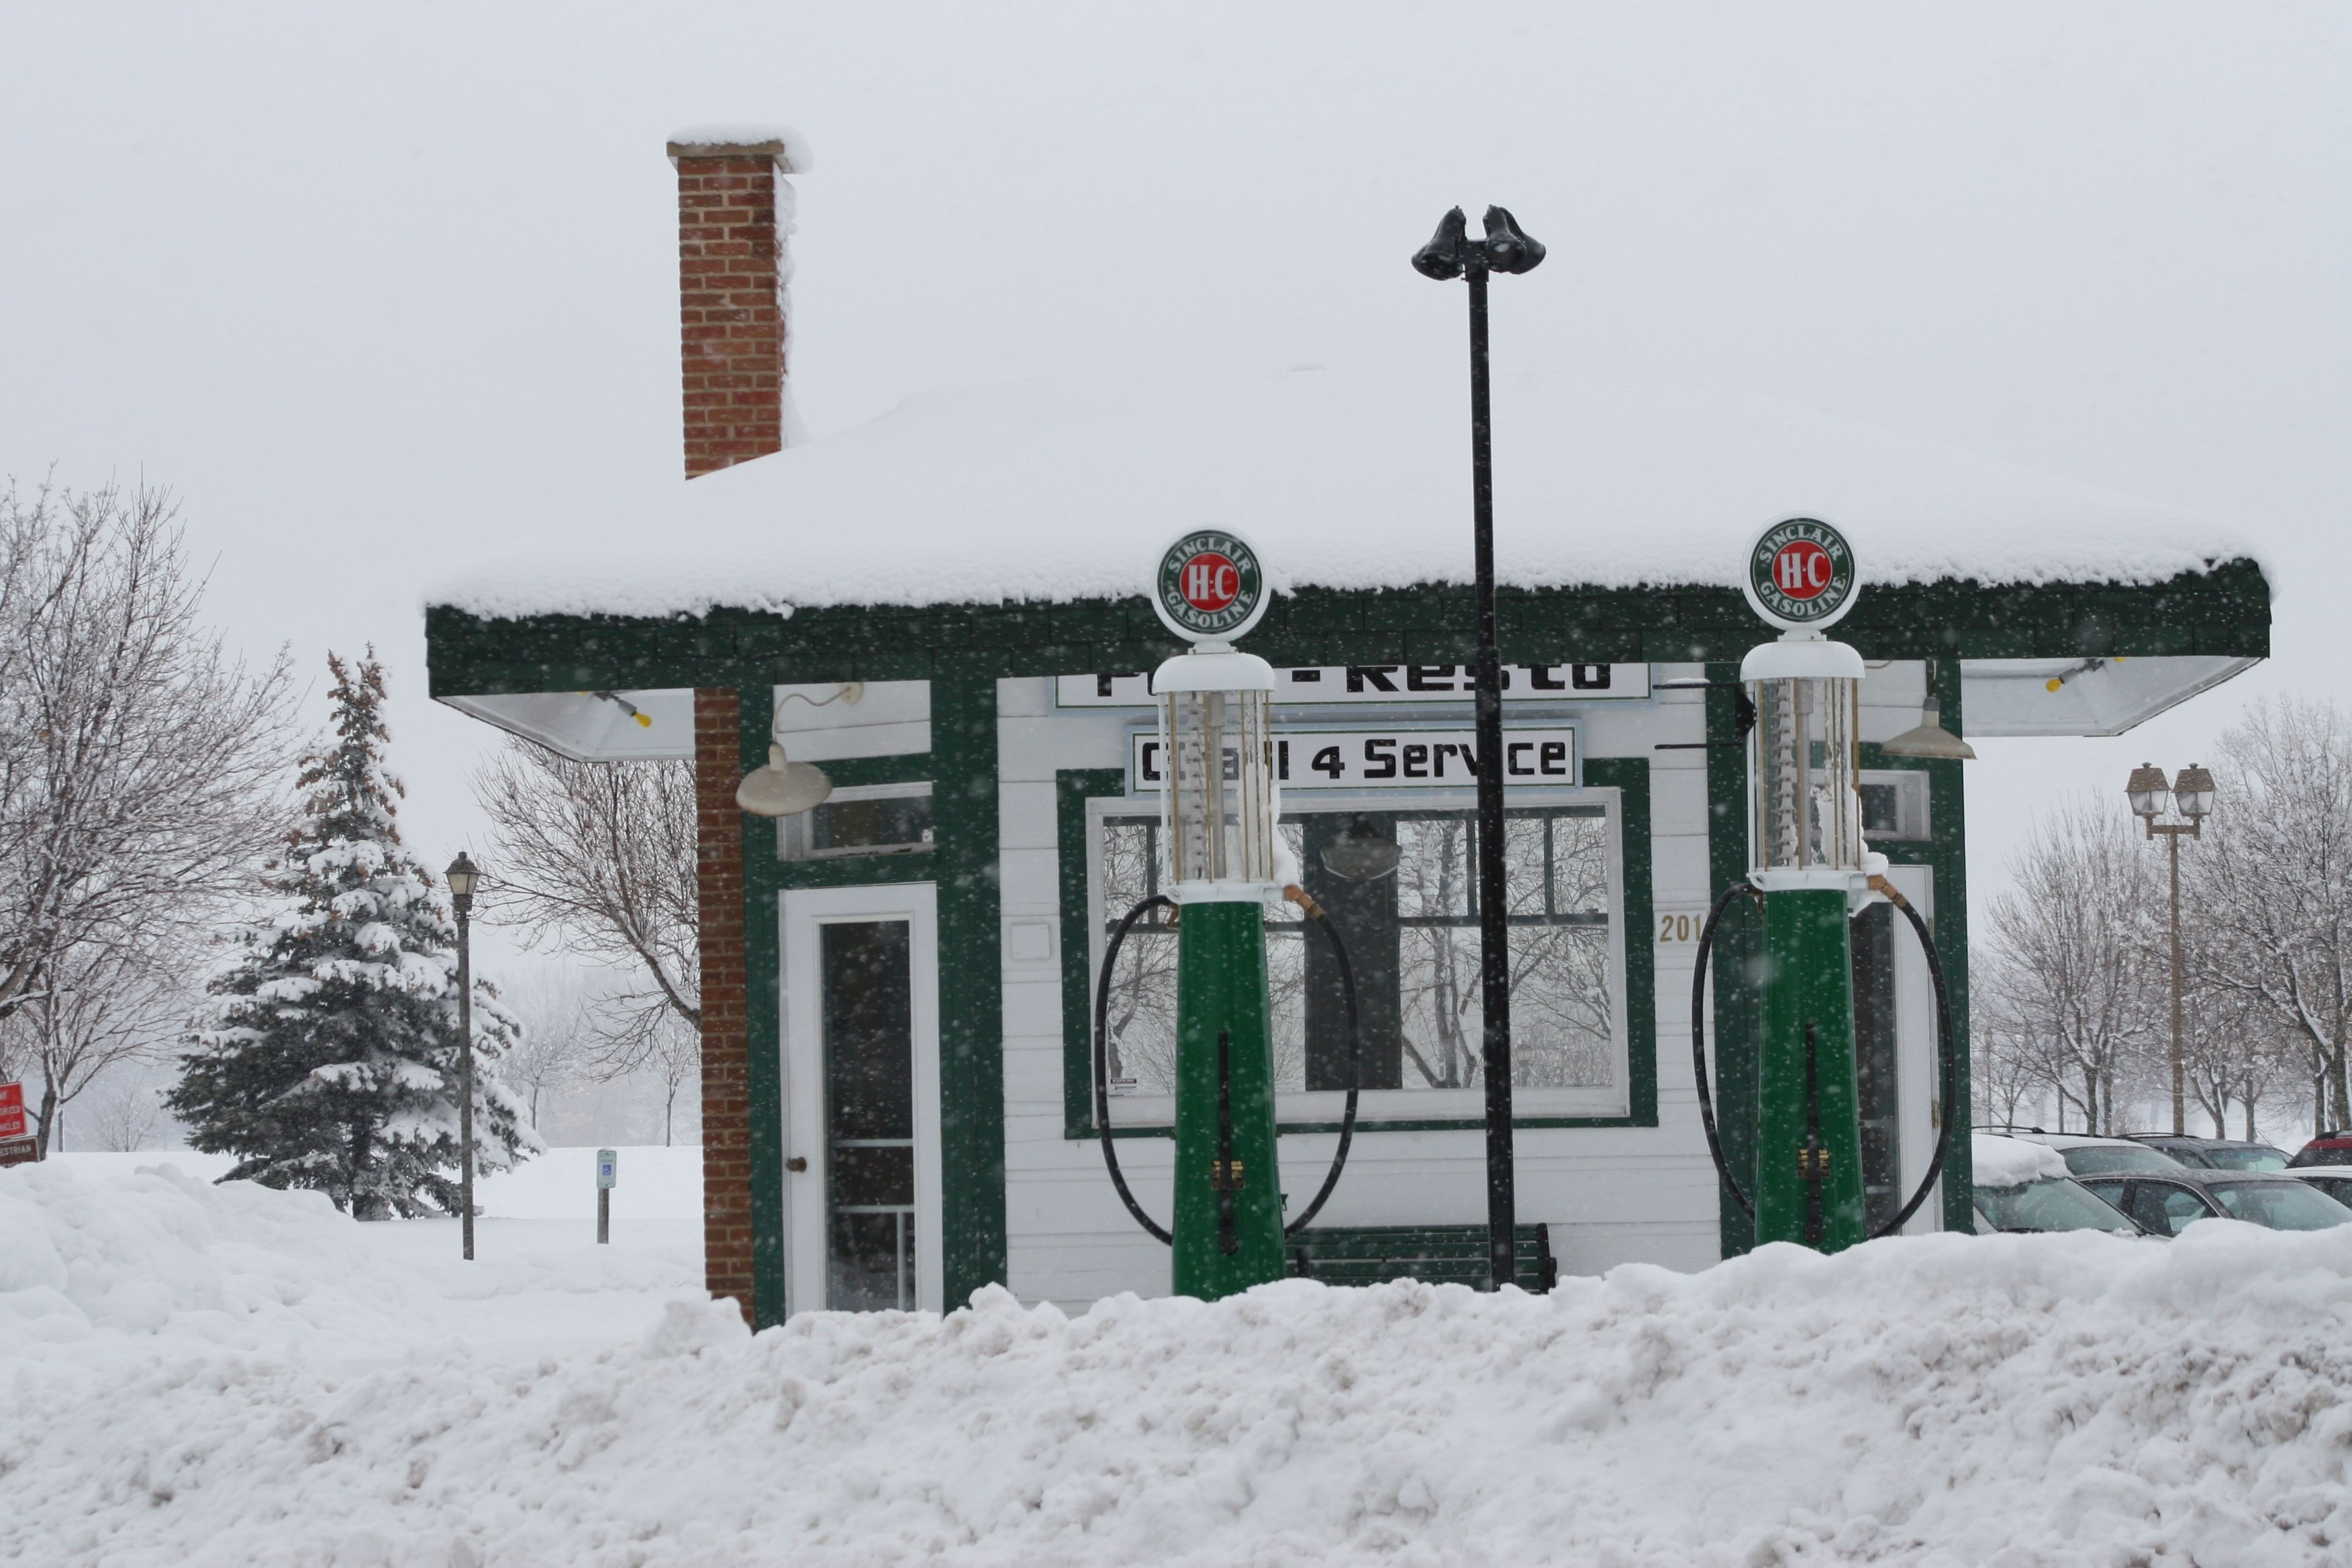 Polo Resto covered in snow in historic Downtown De Pere. Photo by Dennis Jensen